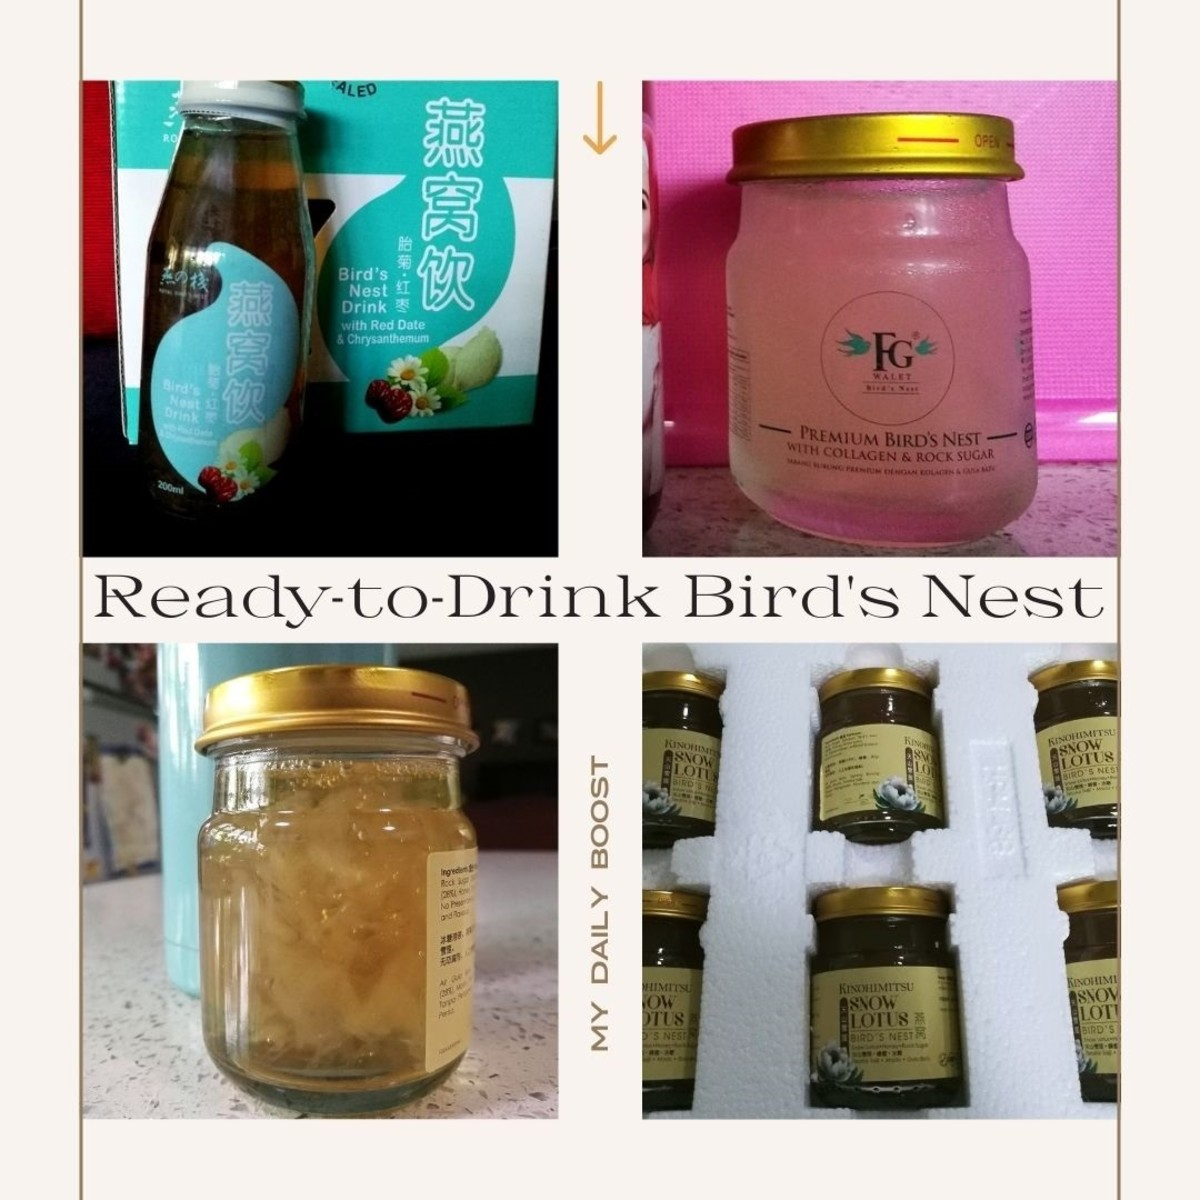 Some of the ready to drink bird's nest that I have tried including Royal Bird's Nest that claimed to use cave bird's nest